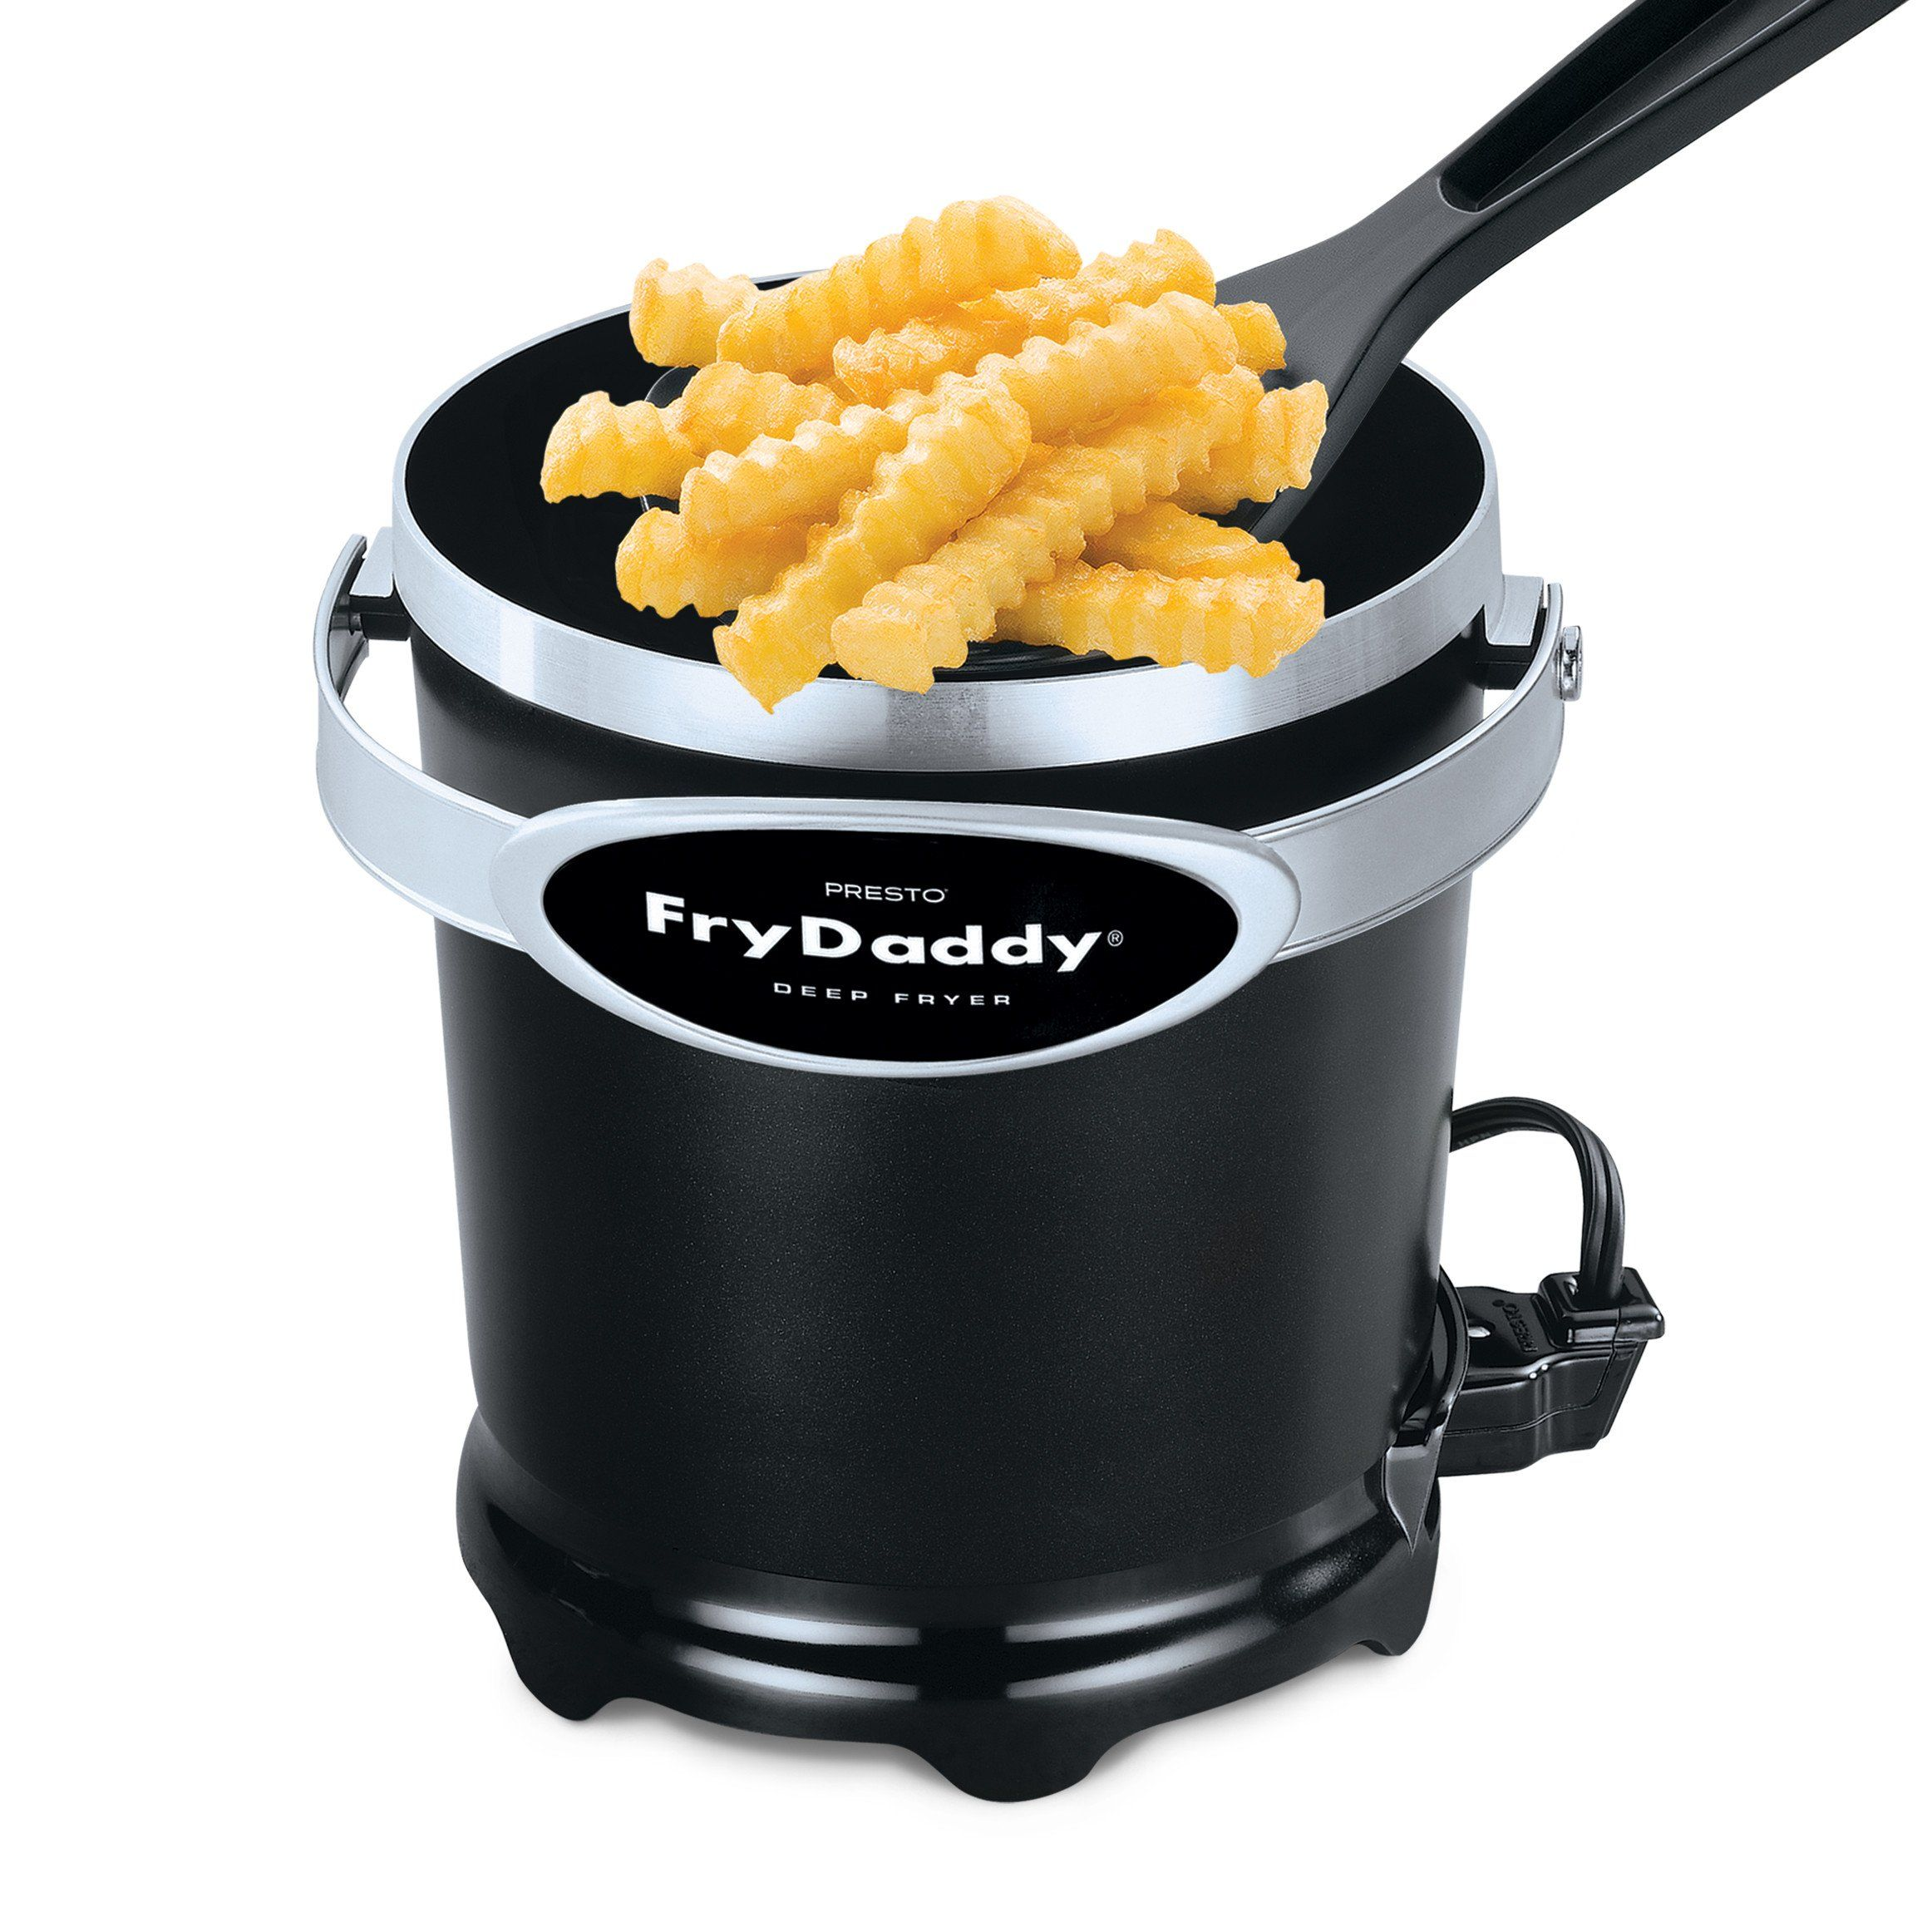 Presto 05420 FryDaddy Electric Deep Fryer ** Check out the